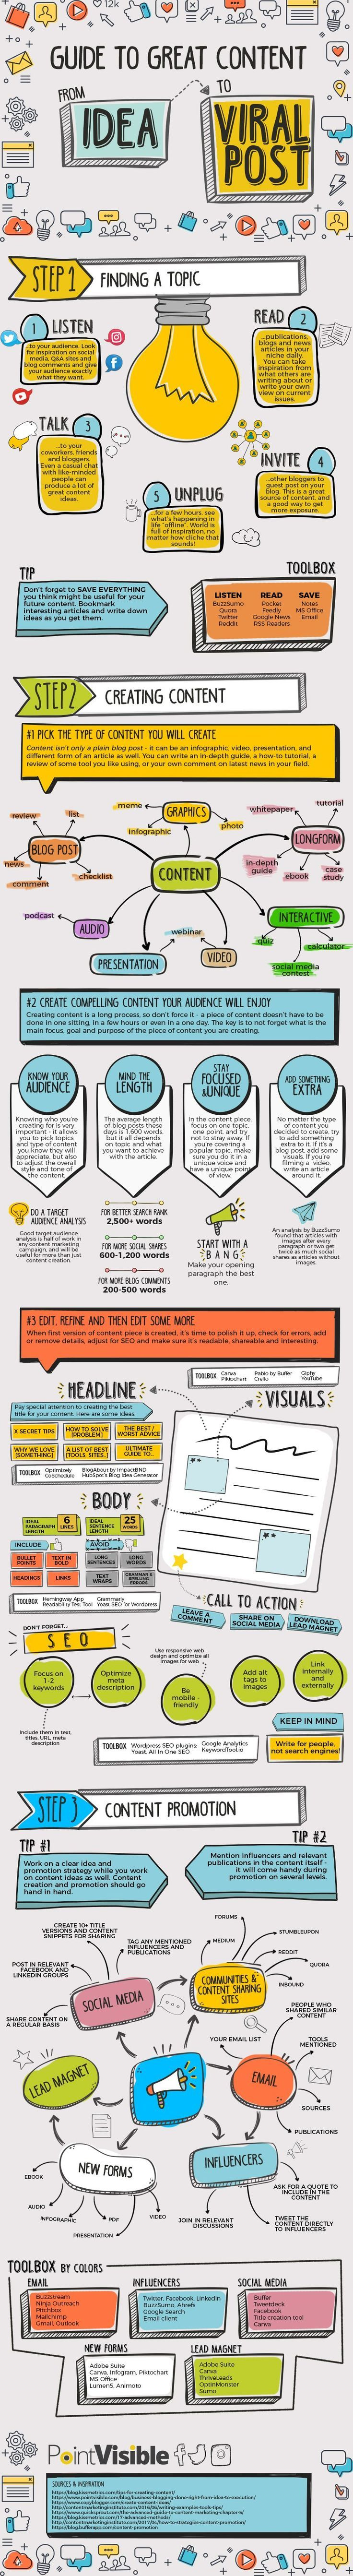 Advanced #Blogging Tips: 3 Steps to Create Viral Posts [#Infographic]